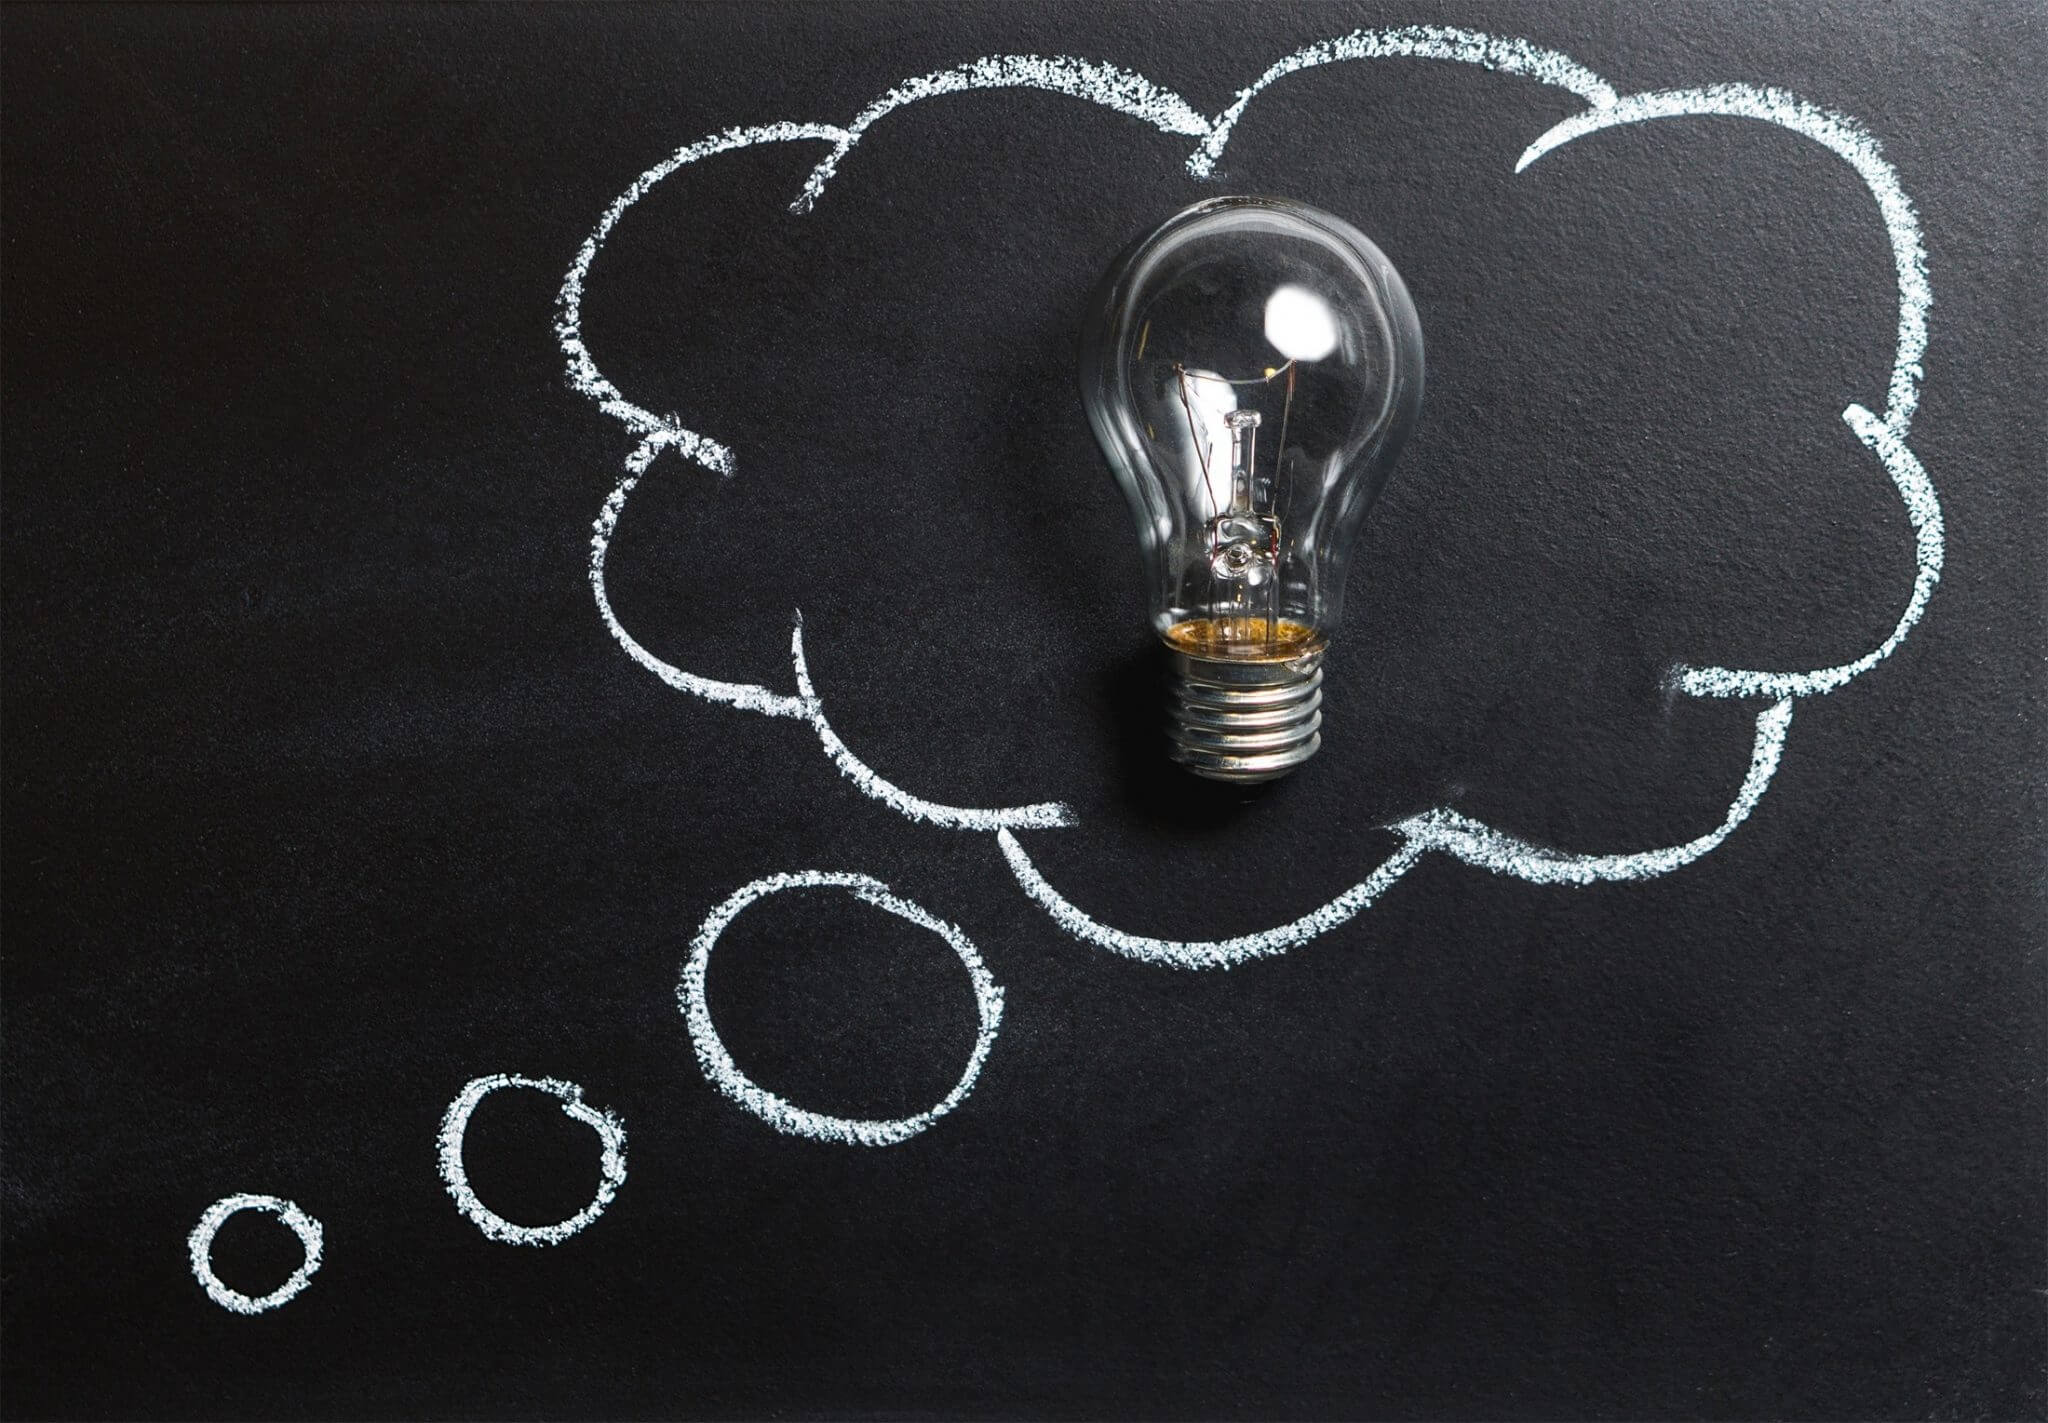 light bulb within a thought bubble on a chalkboard signifying an idea or something clever.